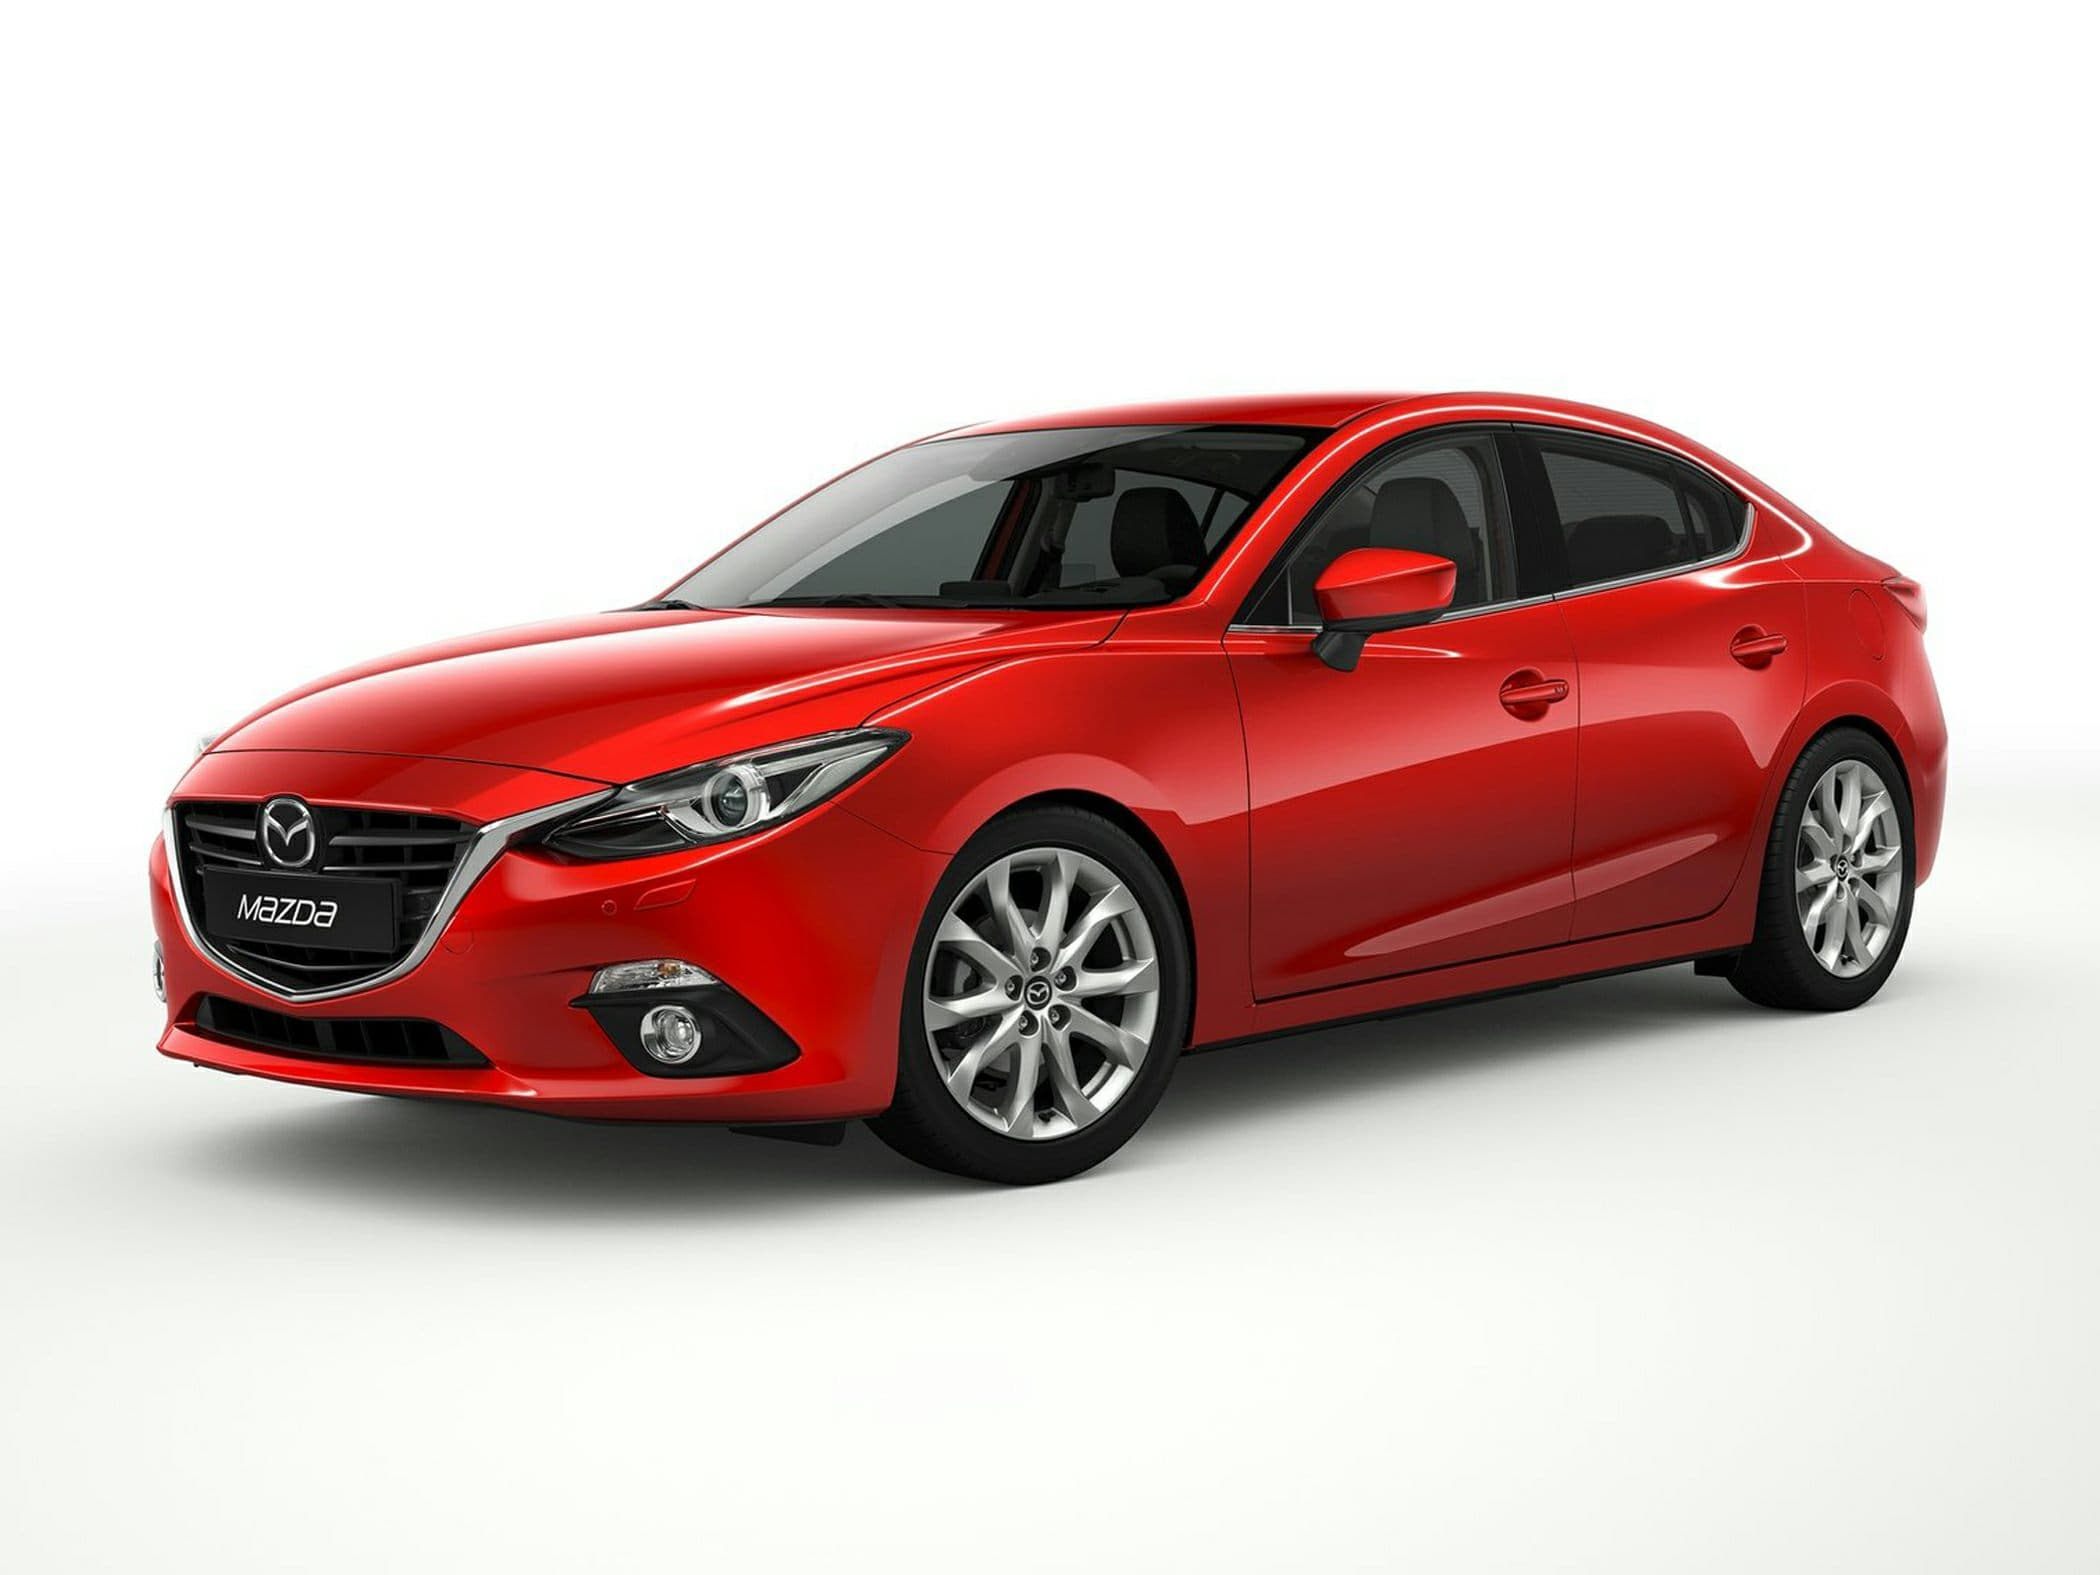 Mazda 3 2016 Sedan Wallpapers Hd High Quality Download